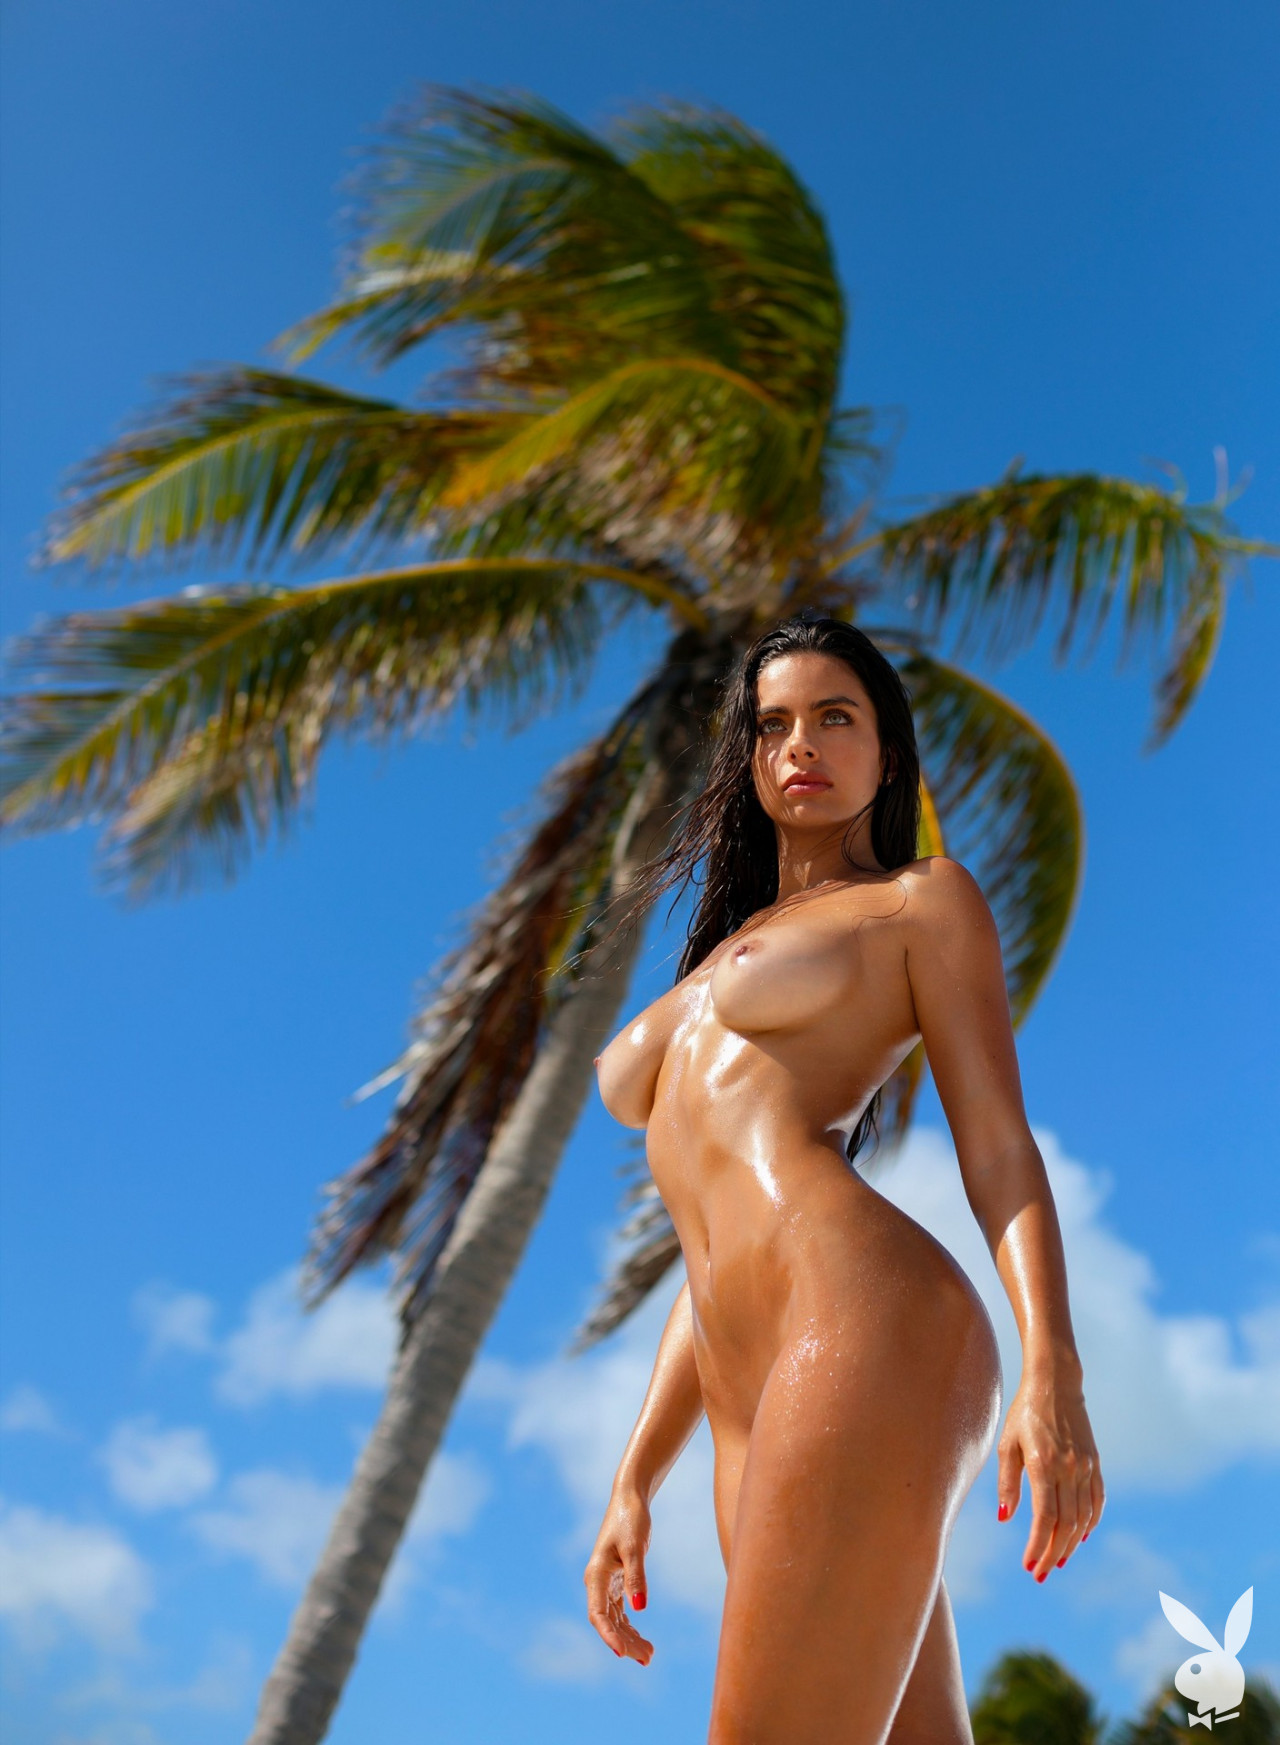 Priscilla Huggins Playmate Outtakes Playboy Plus (14)